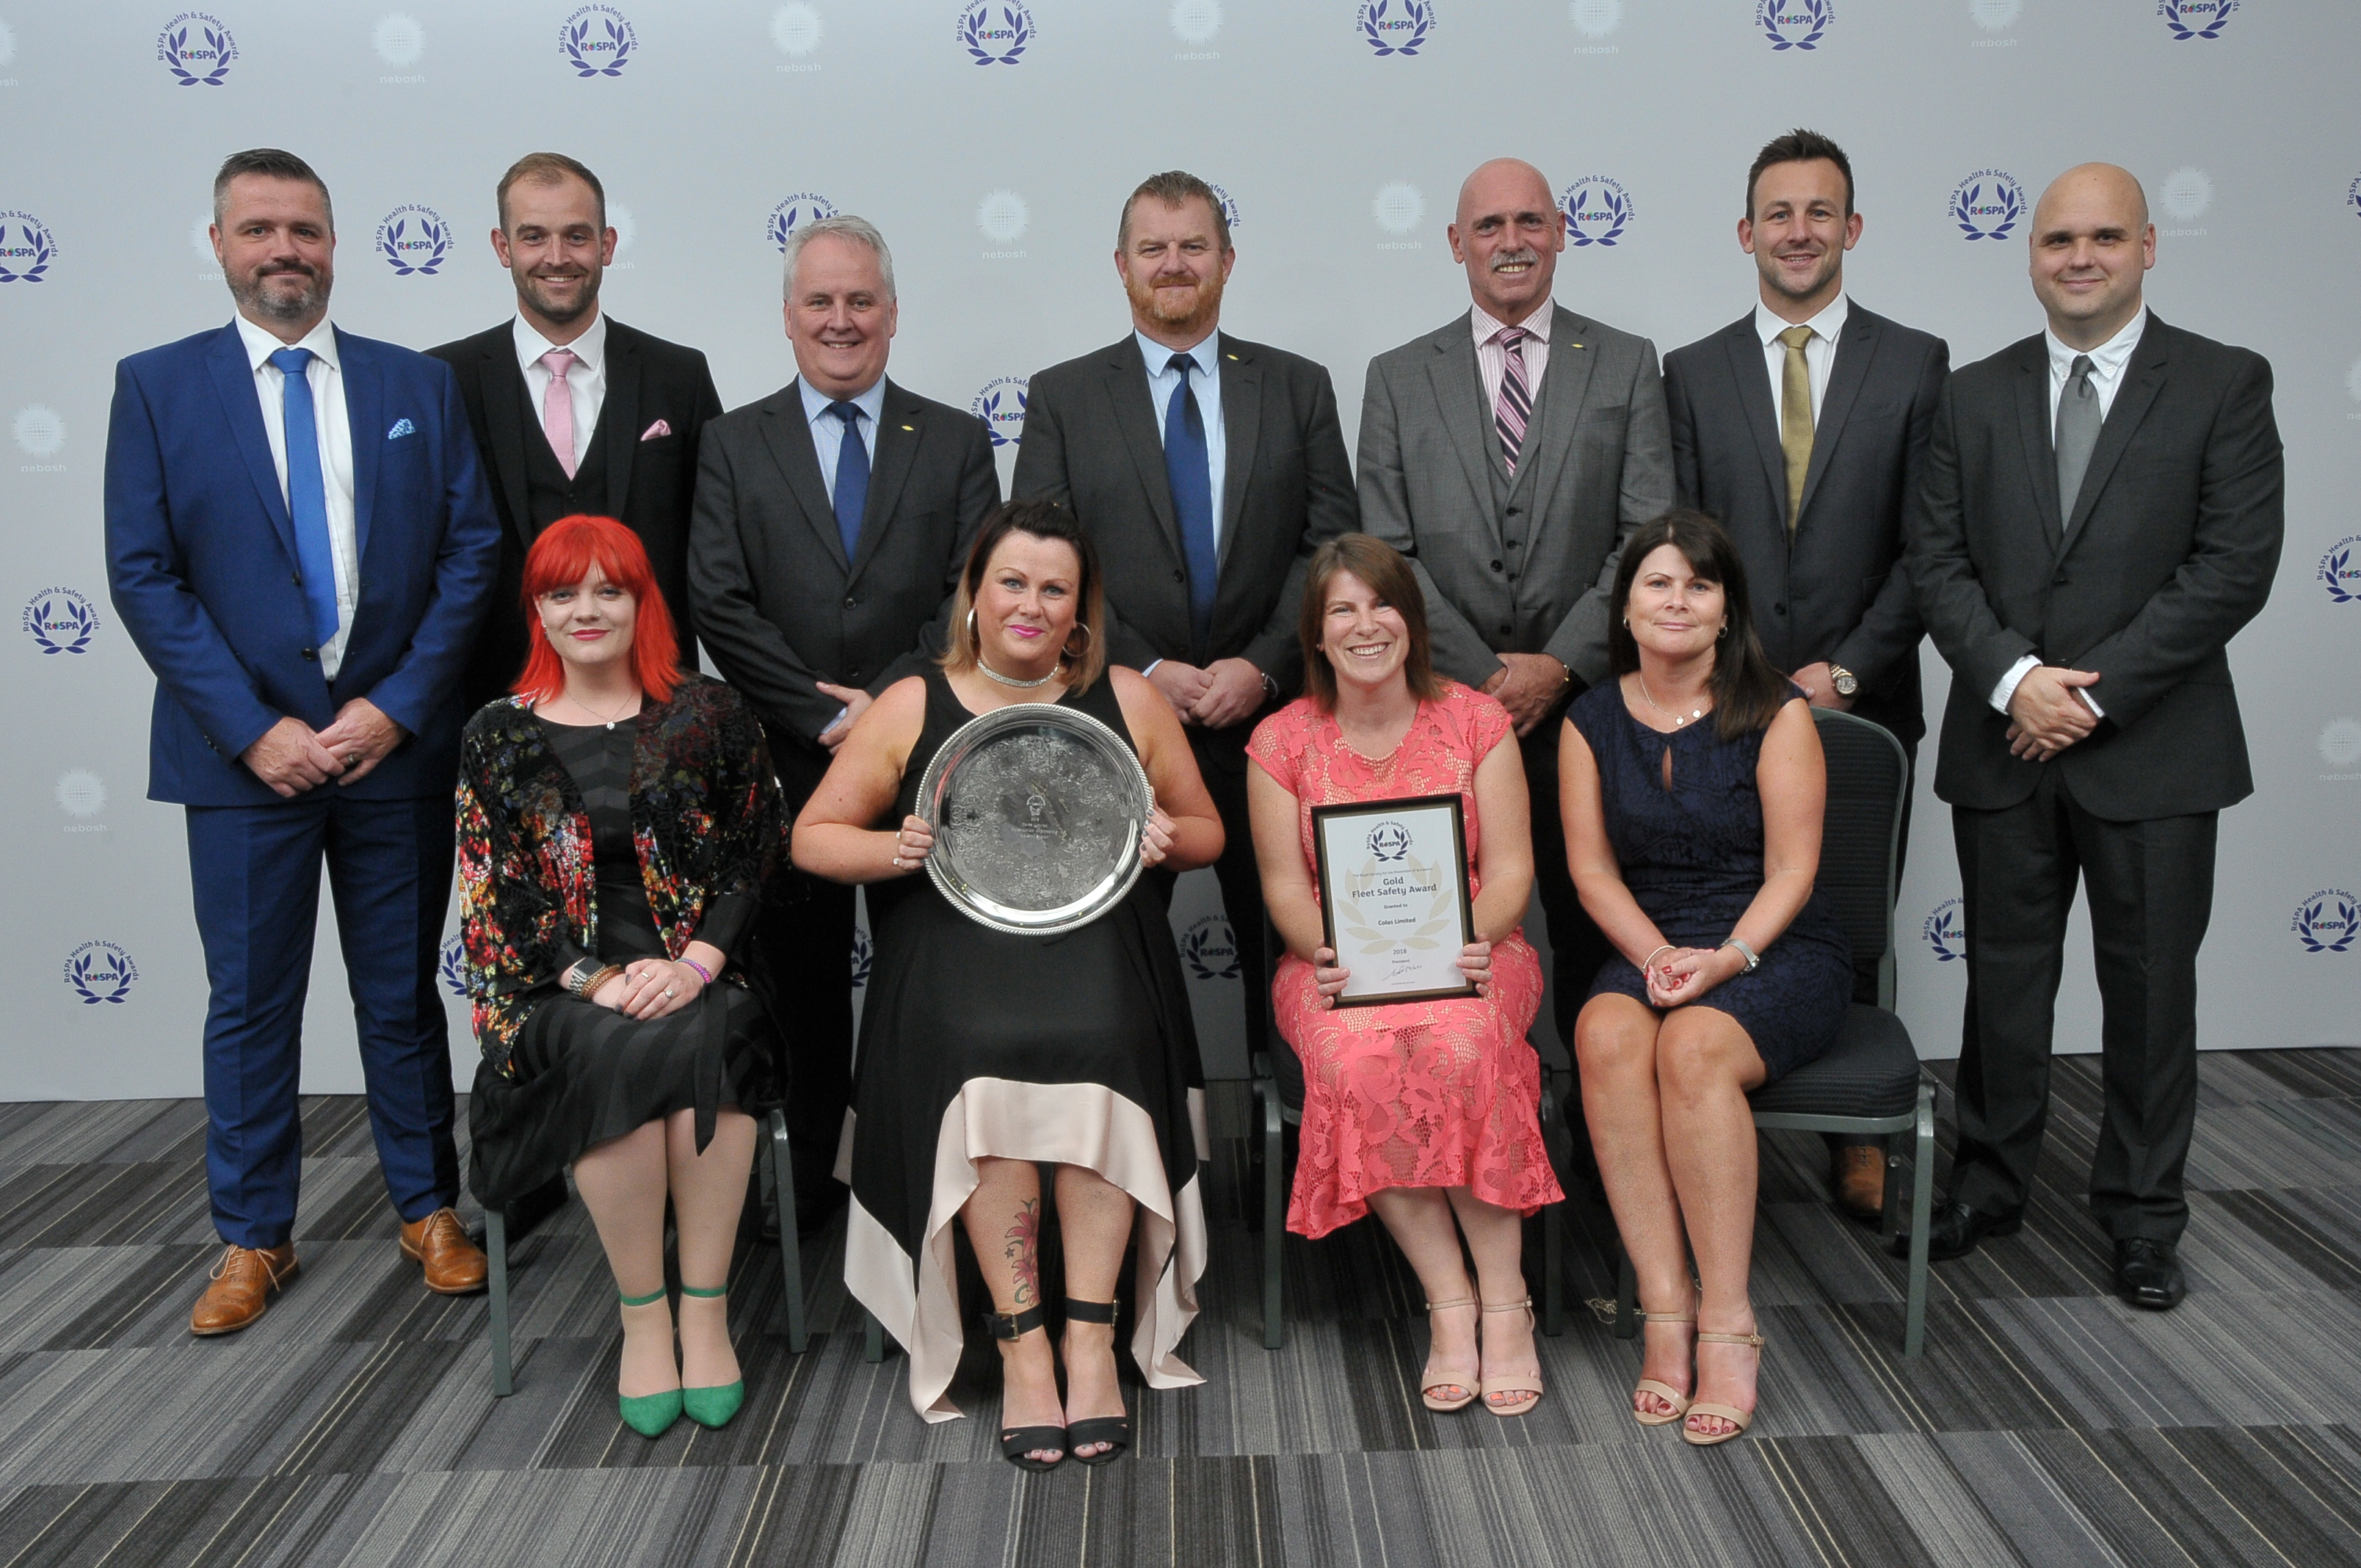 Colas receive highest ever award from RoSPA